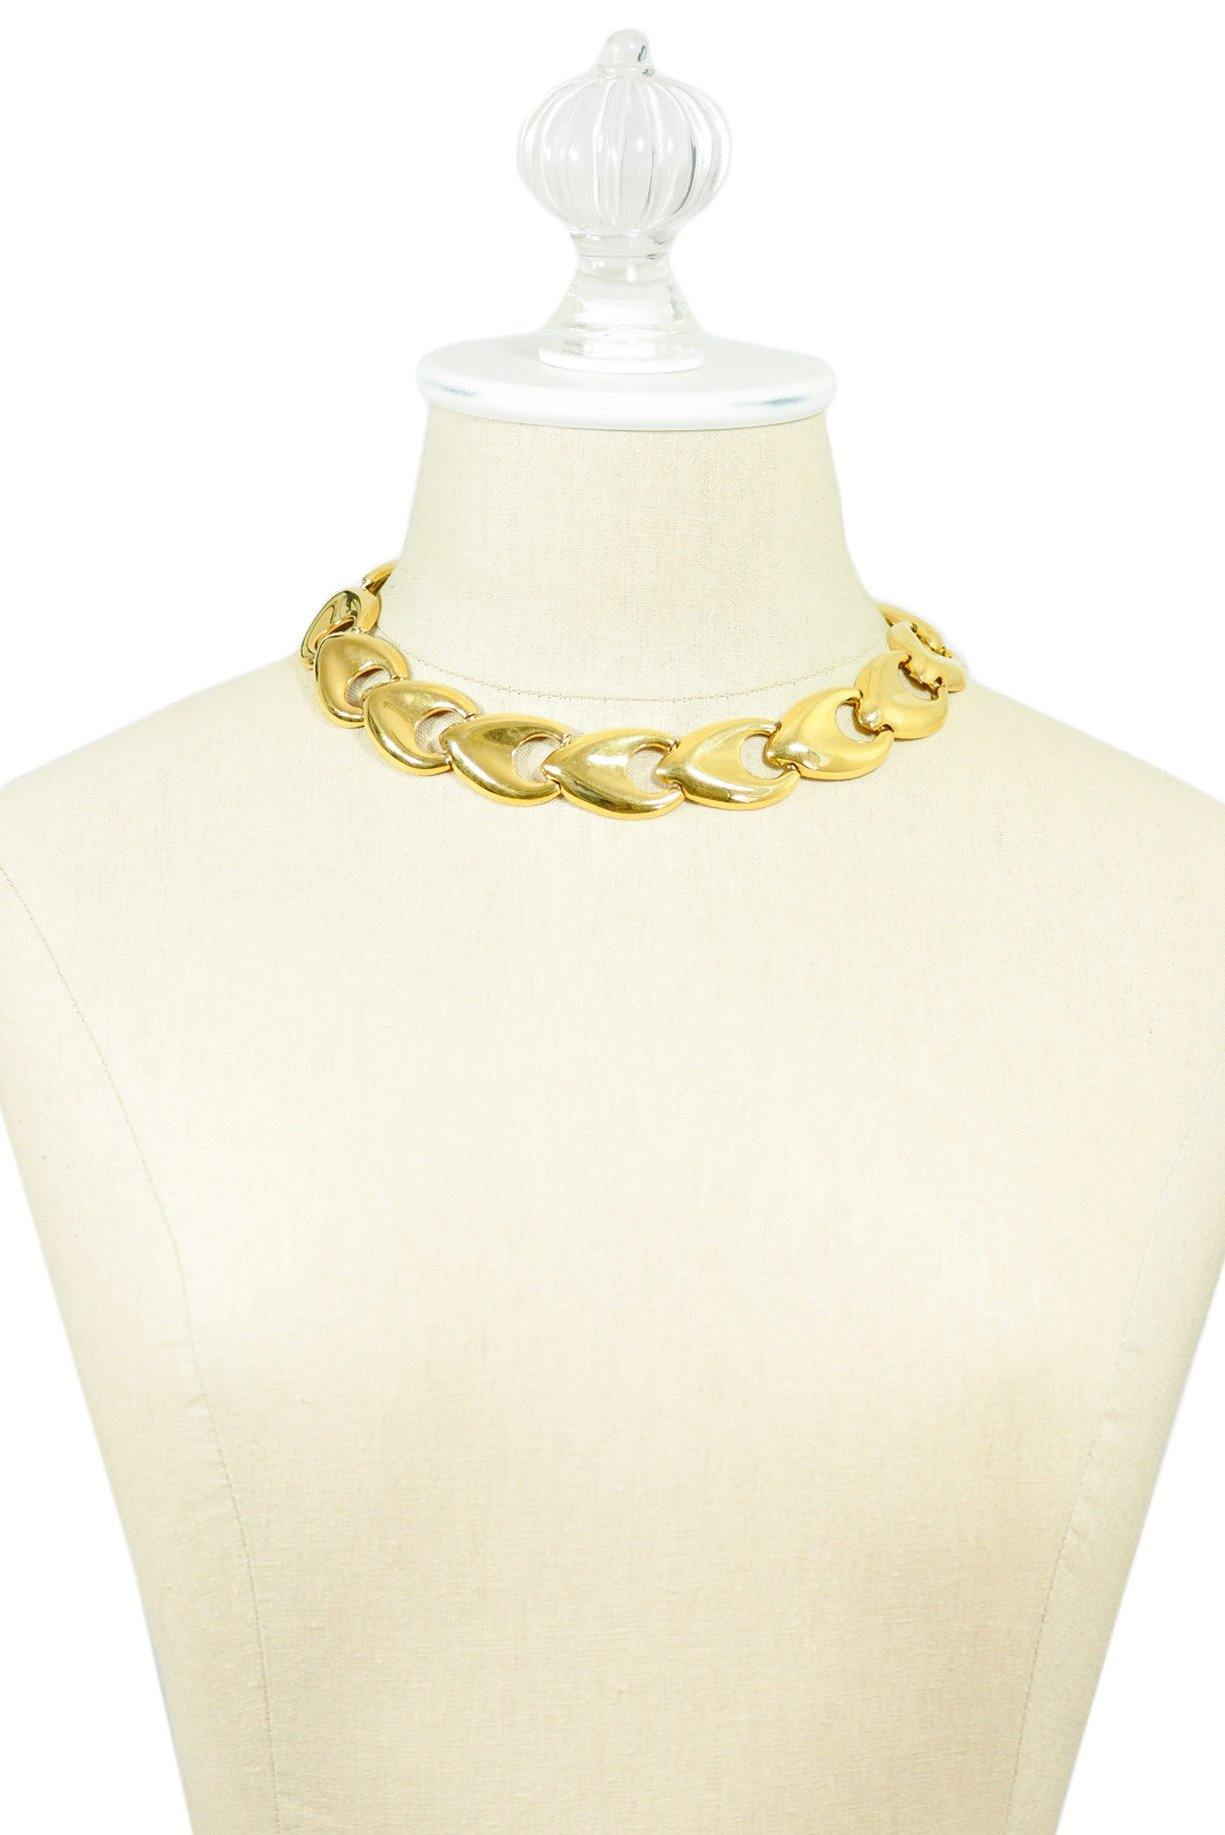 80's__Monet__Chunky Gold Statement Necklace